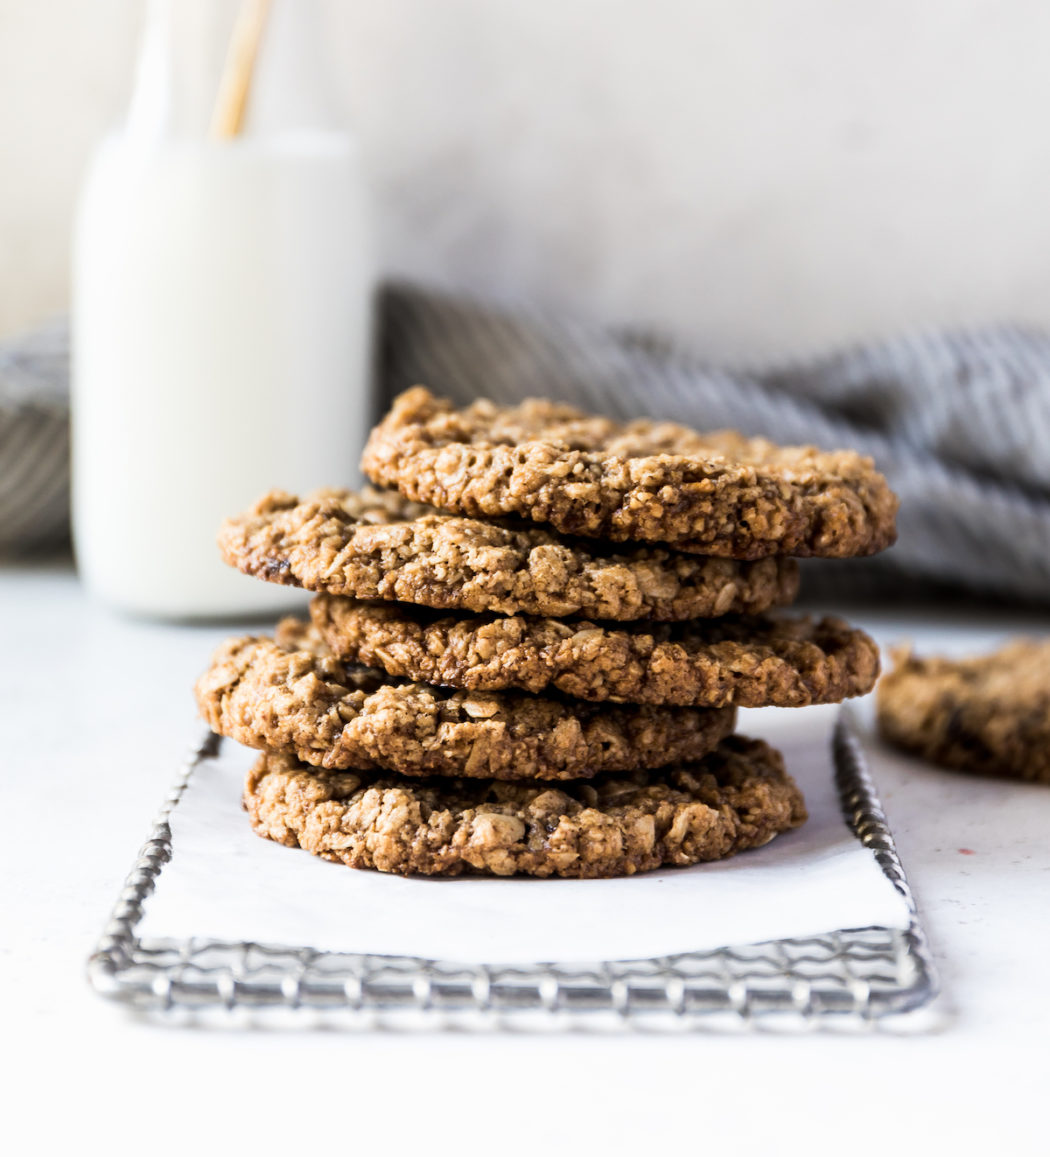 Vegan GF Chocolate Chip Oatmeal Cookies